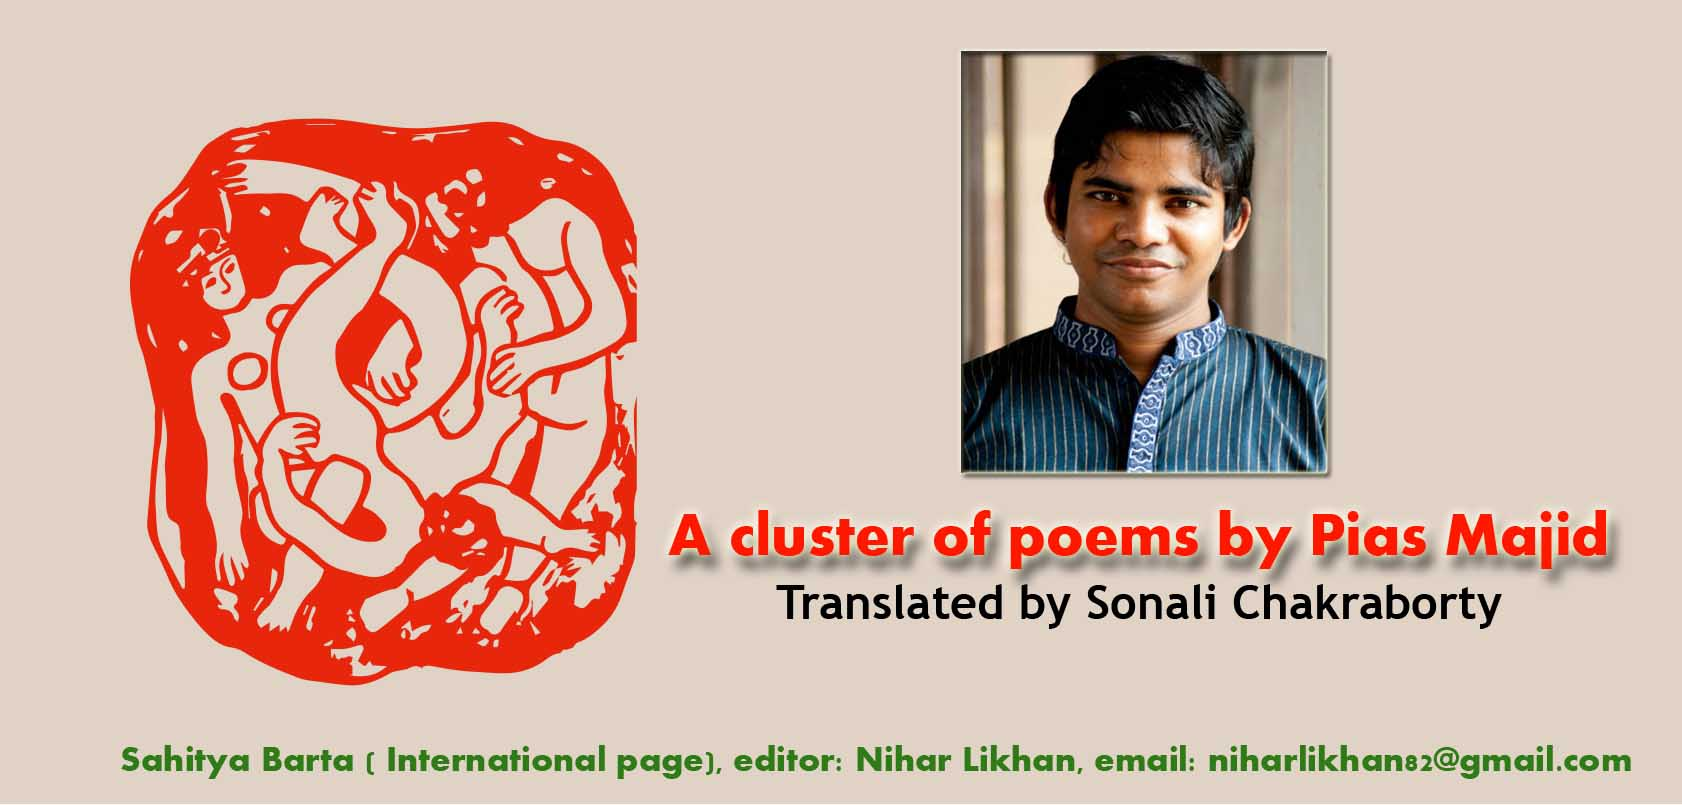 A cluster of poems by Pias Majid